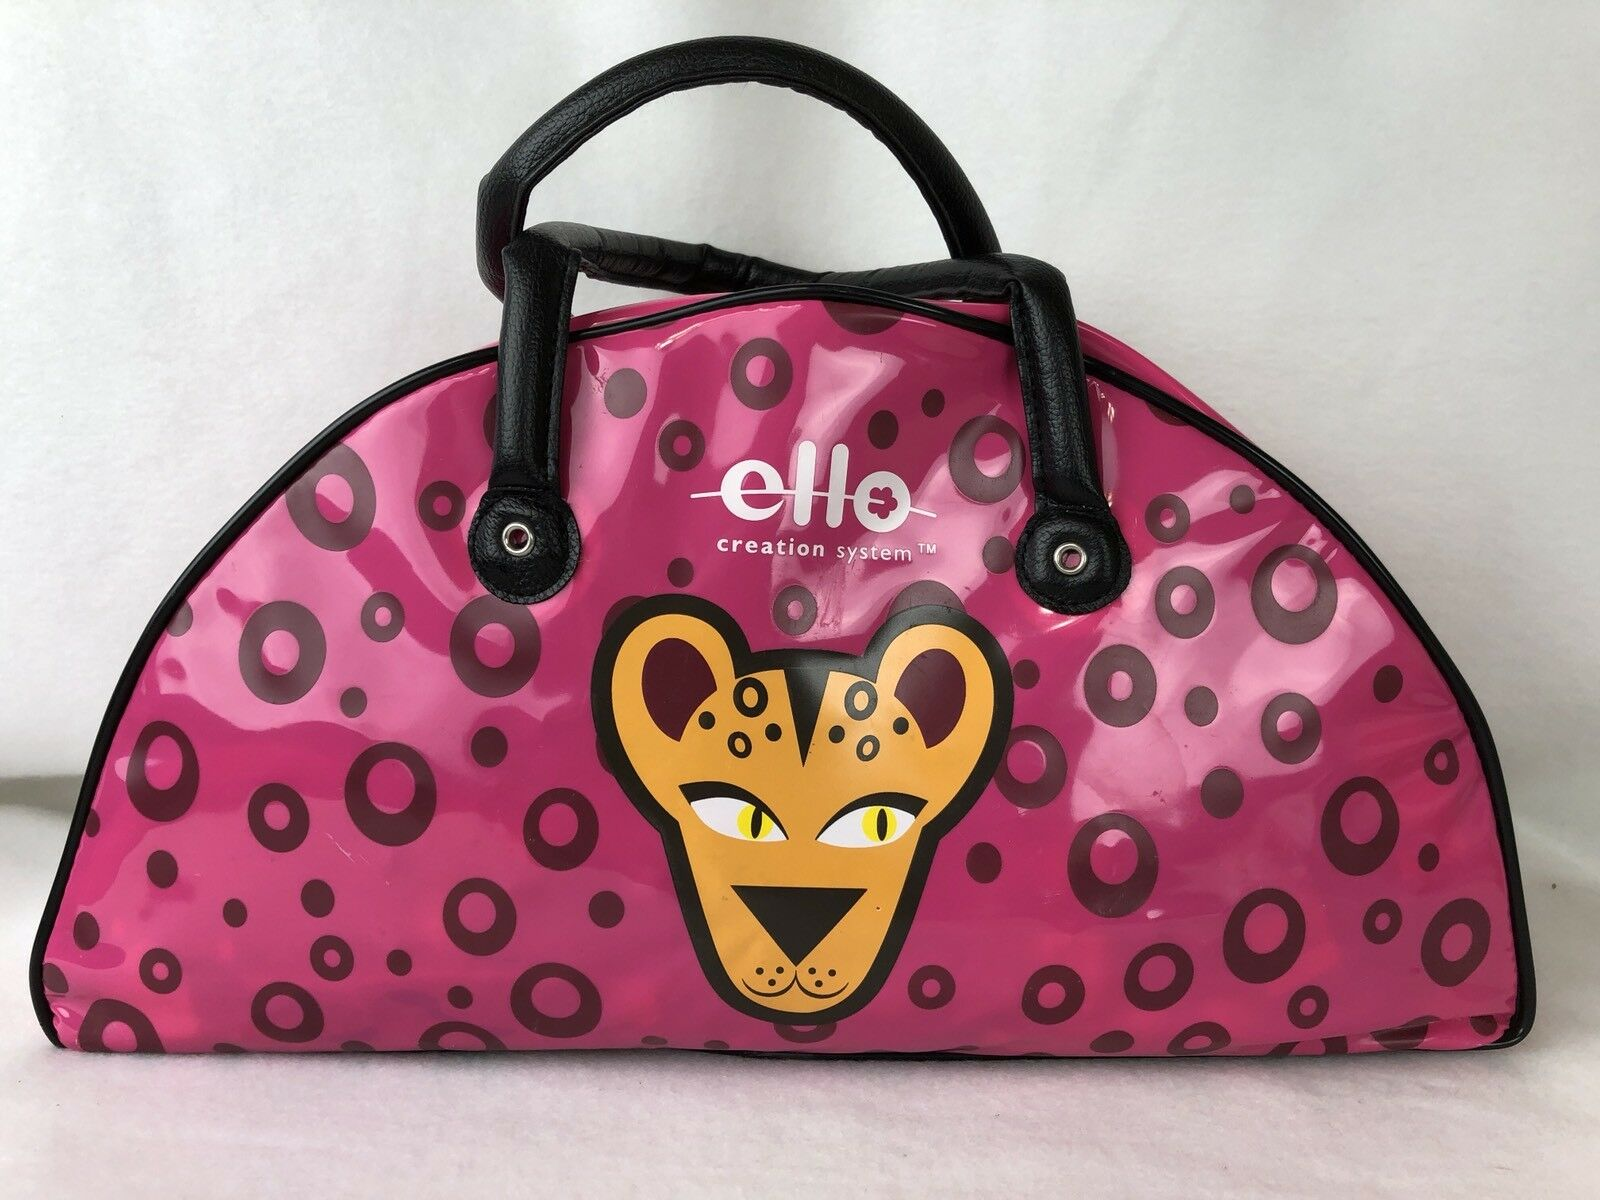 ELLO Creation System Building Learning Mattel Toy Carry Bag Jungala Aquaria Bag